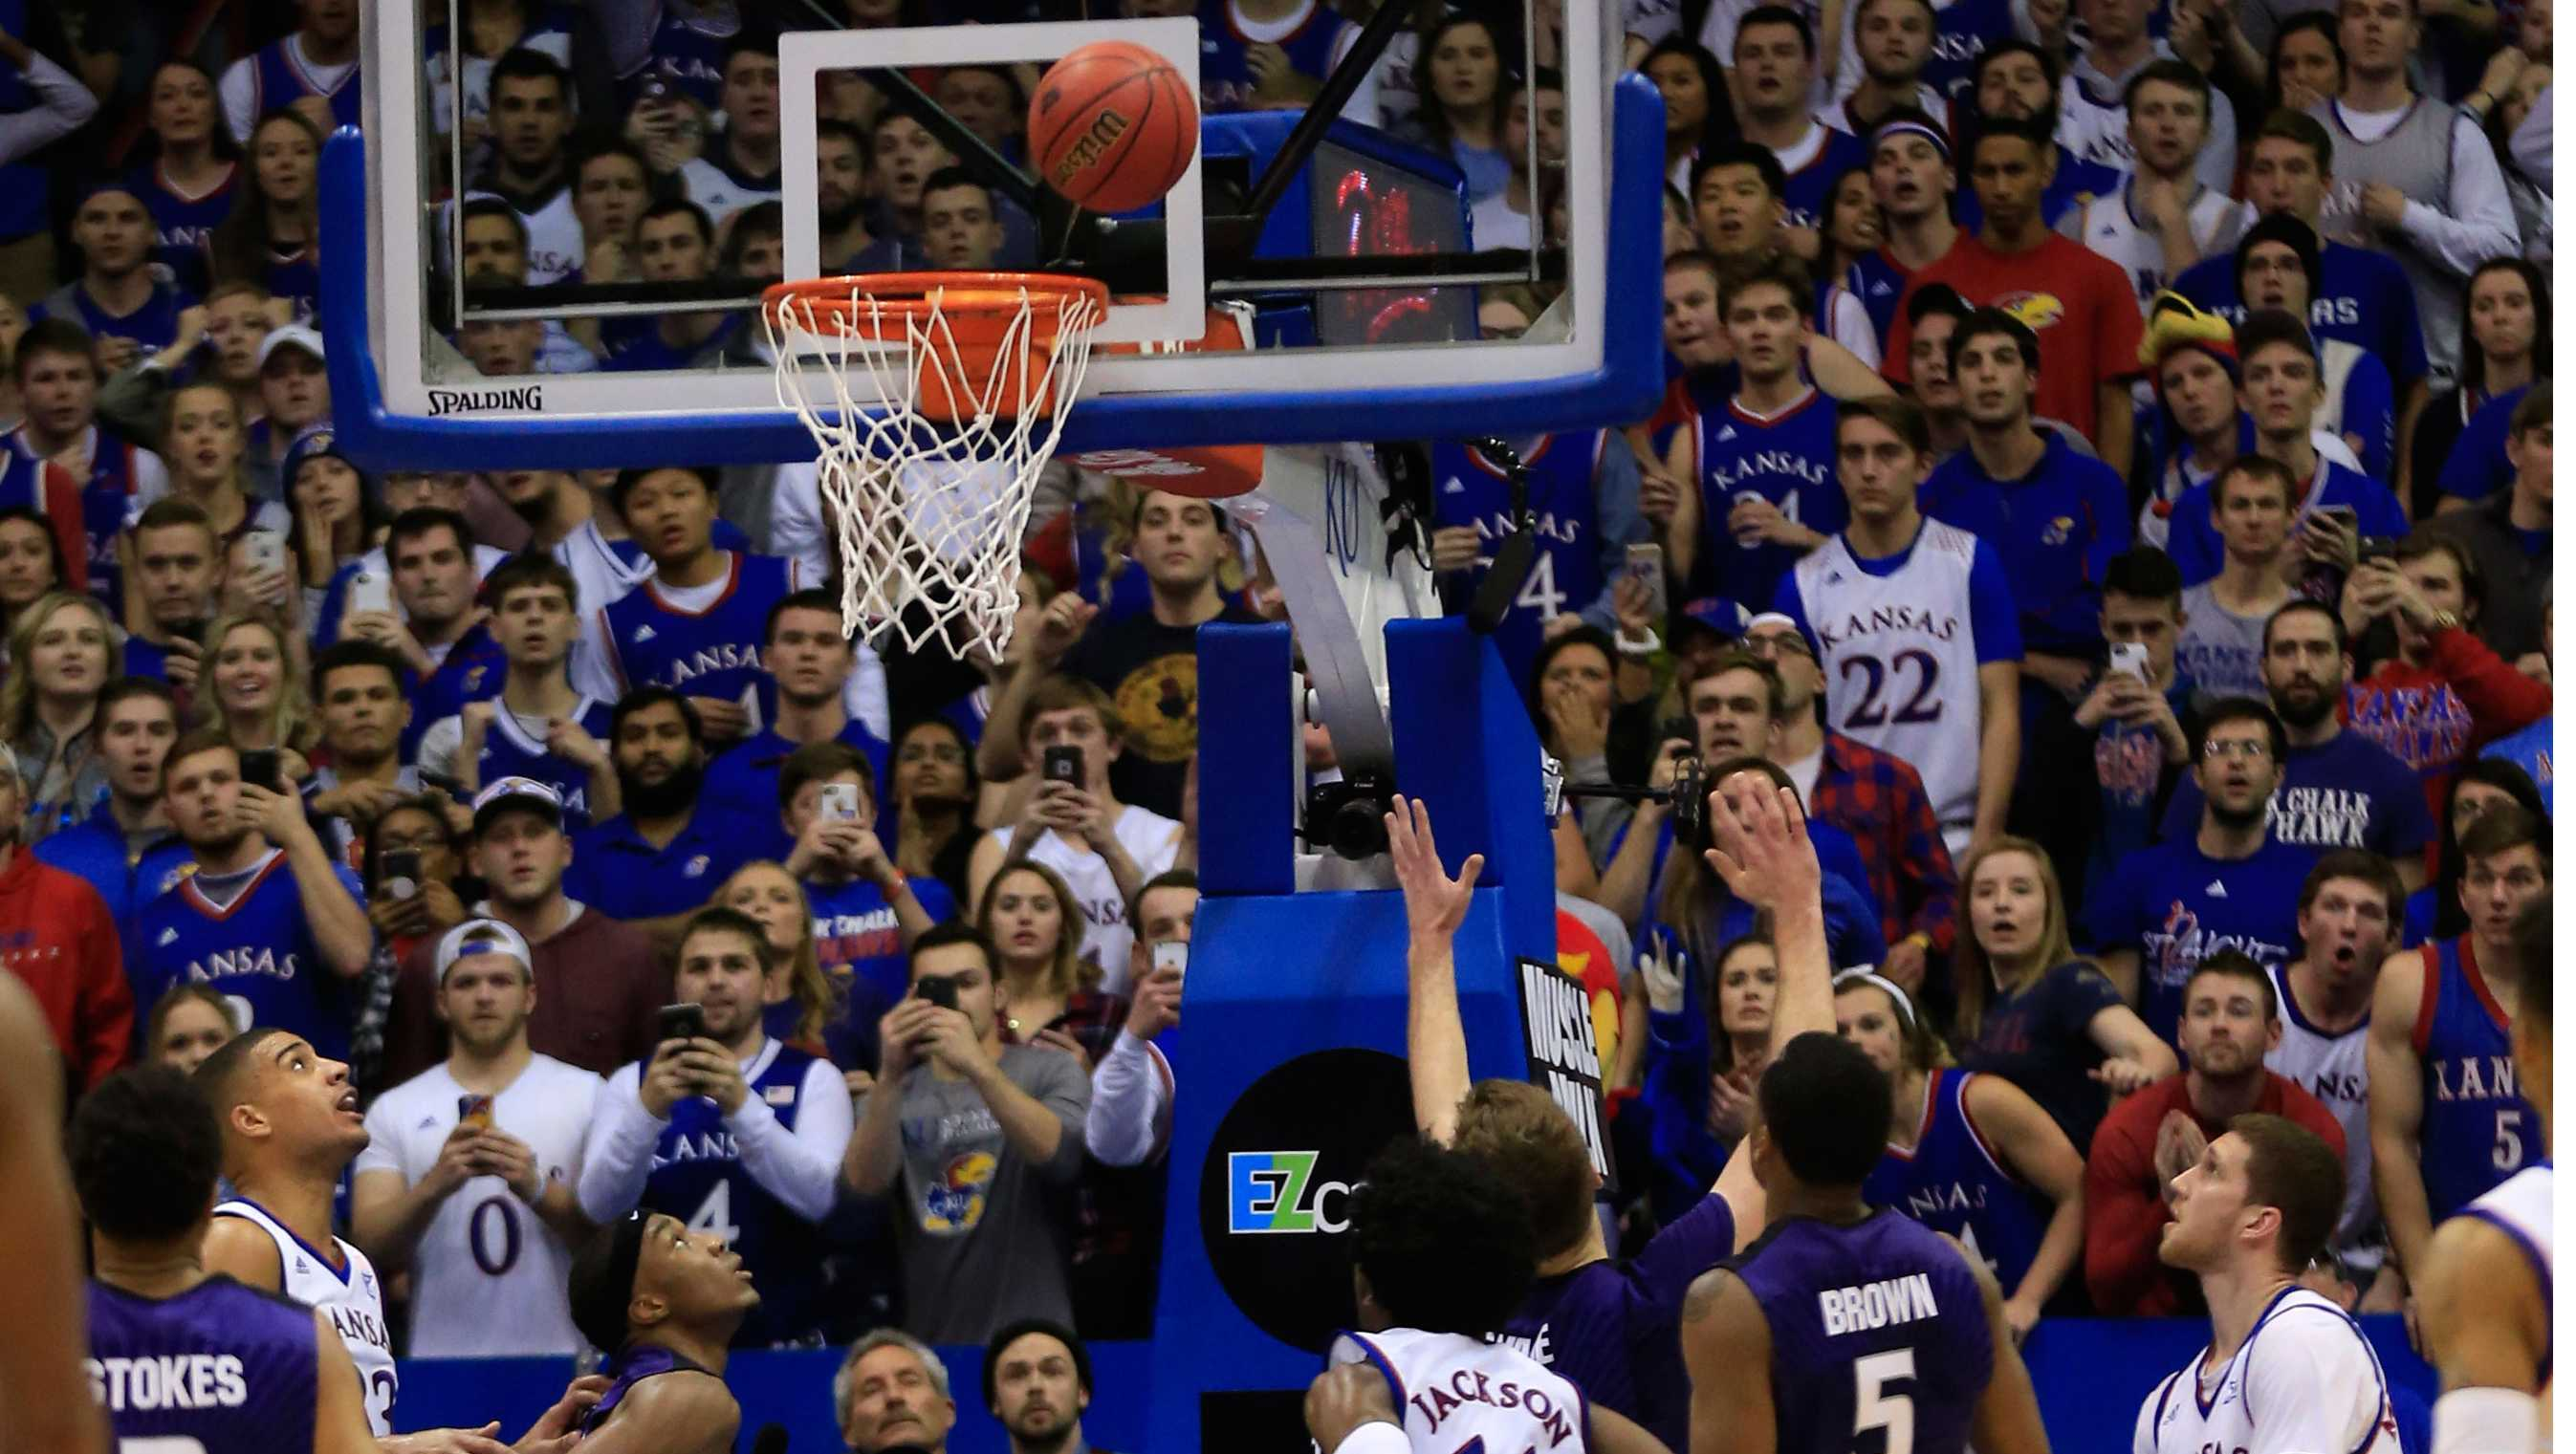 Players watch a last-second basket by Kansas guard Sviatoslav Mykhailiuk, right, during the second half of an NCAA college basketball game against Kansas State in Lawrence, Kan., Tuesday, Jan. 3, 2017. Kansas defeated Kansas State 90-88. (AP Photo/Orlin Wagner)